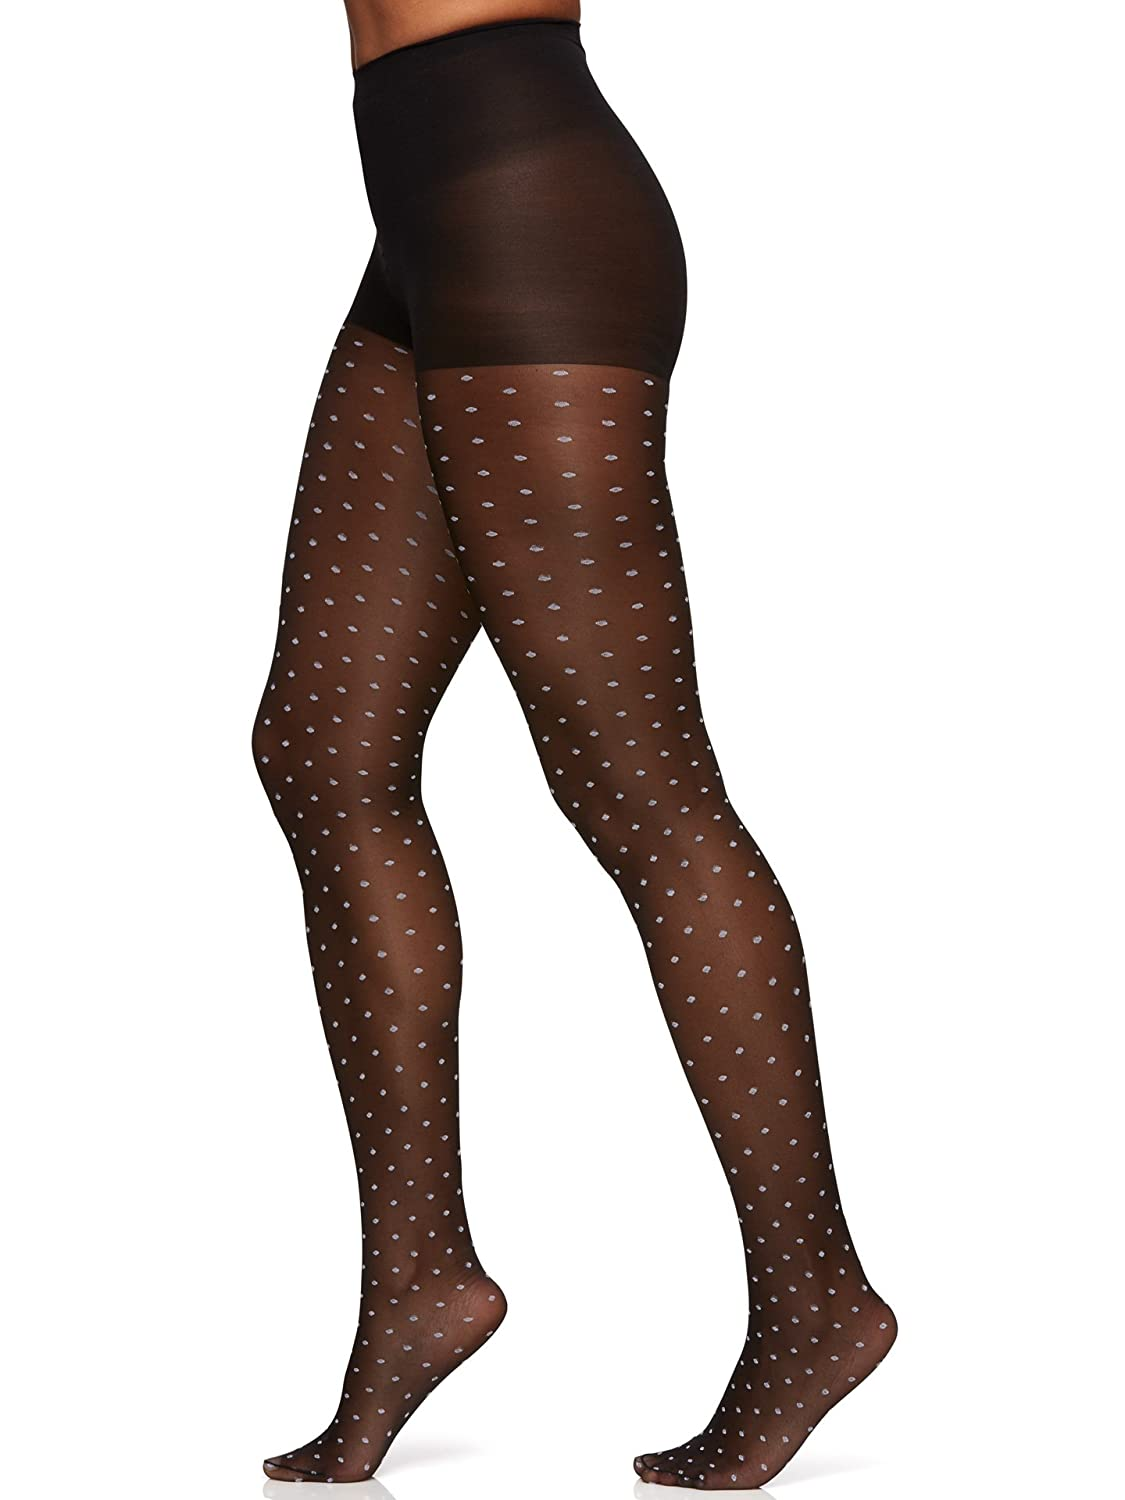 Berkshire womens Trend Two Tone Sheer Dots Control Top Pantyhose 8033